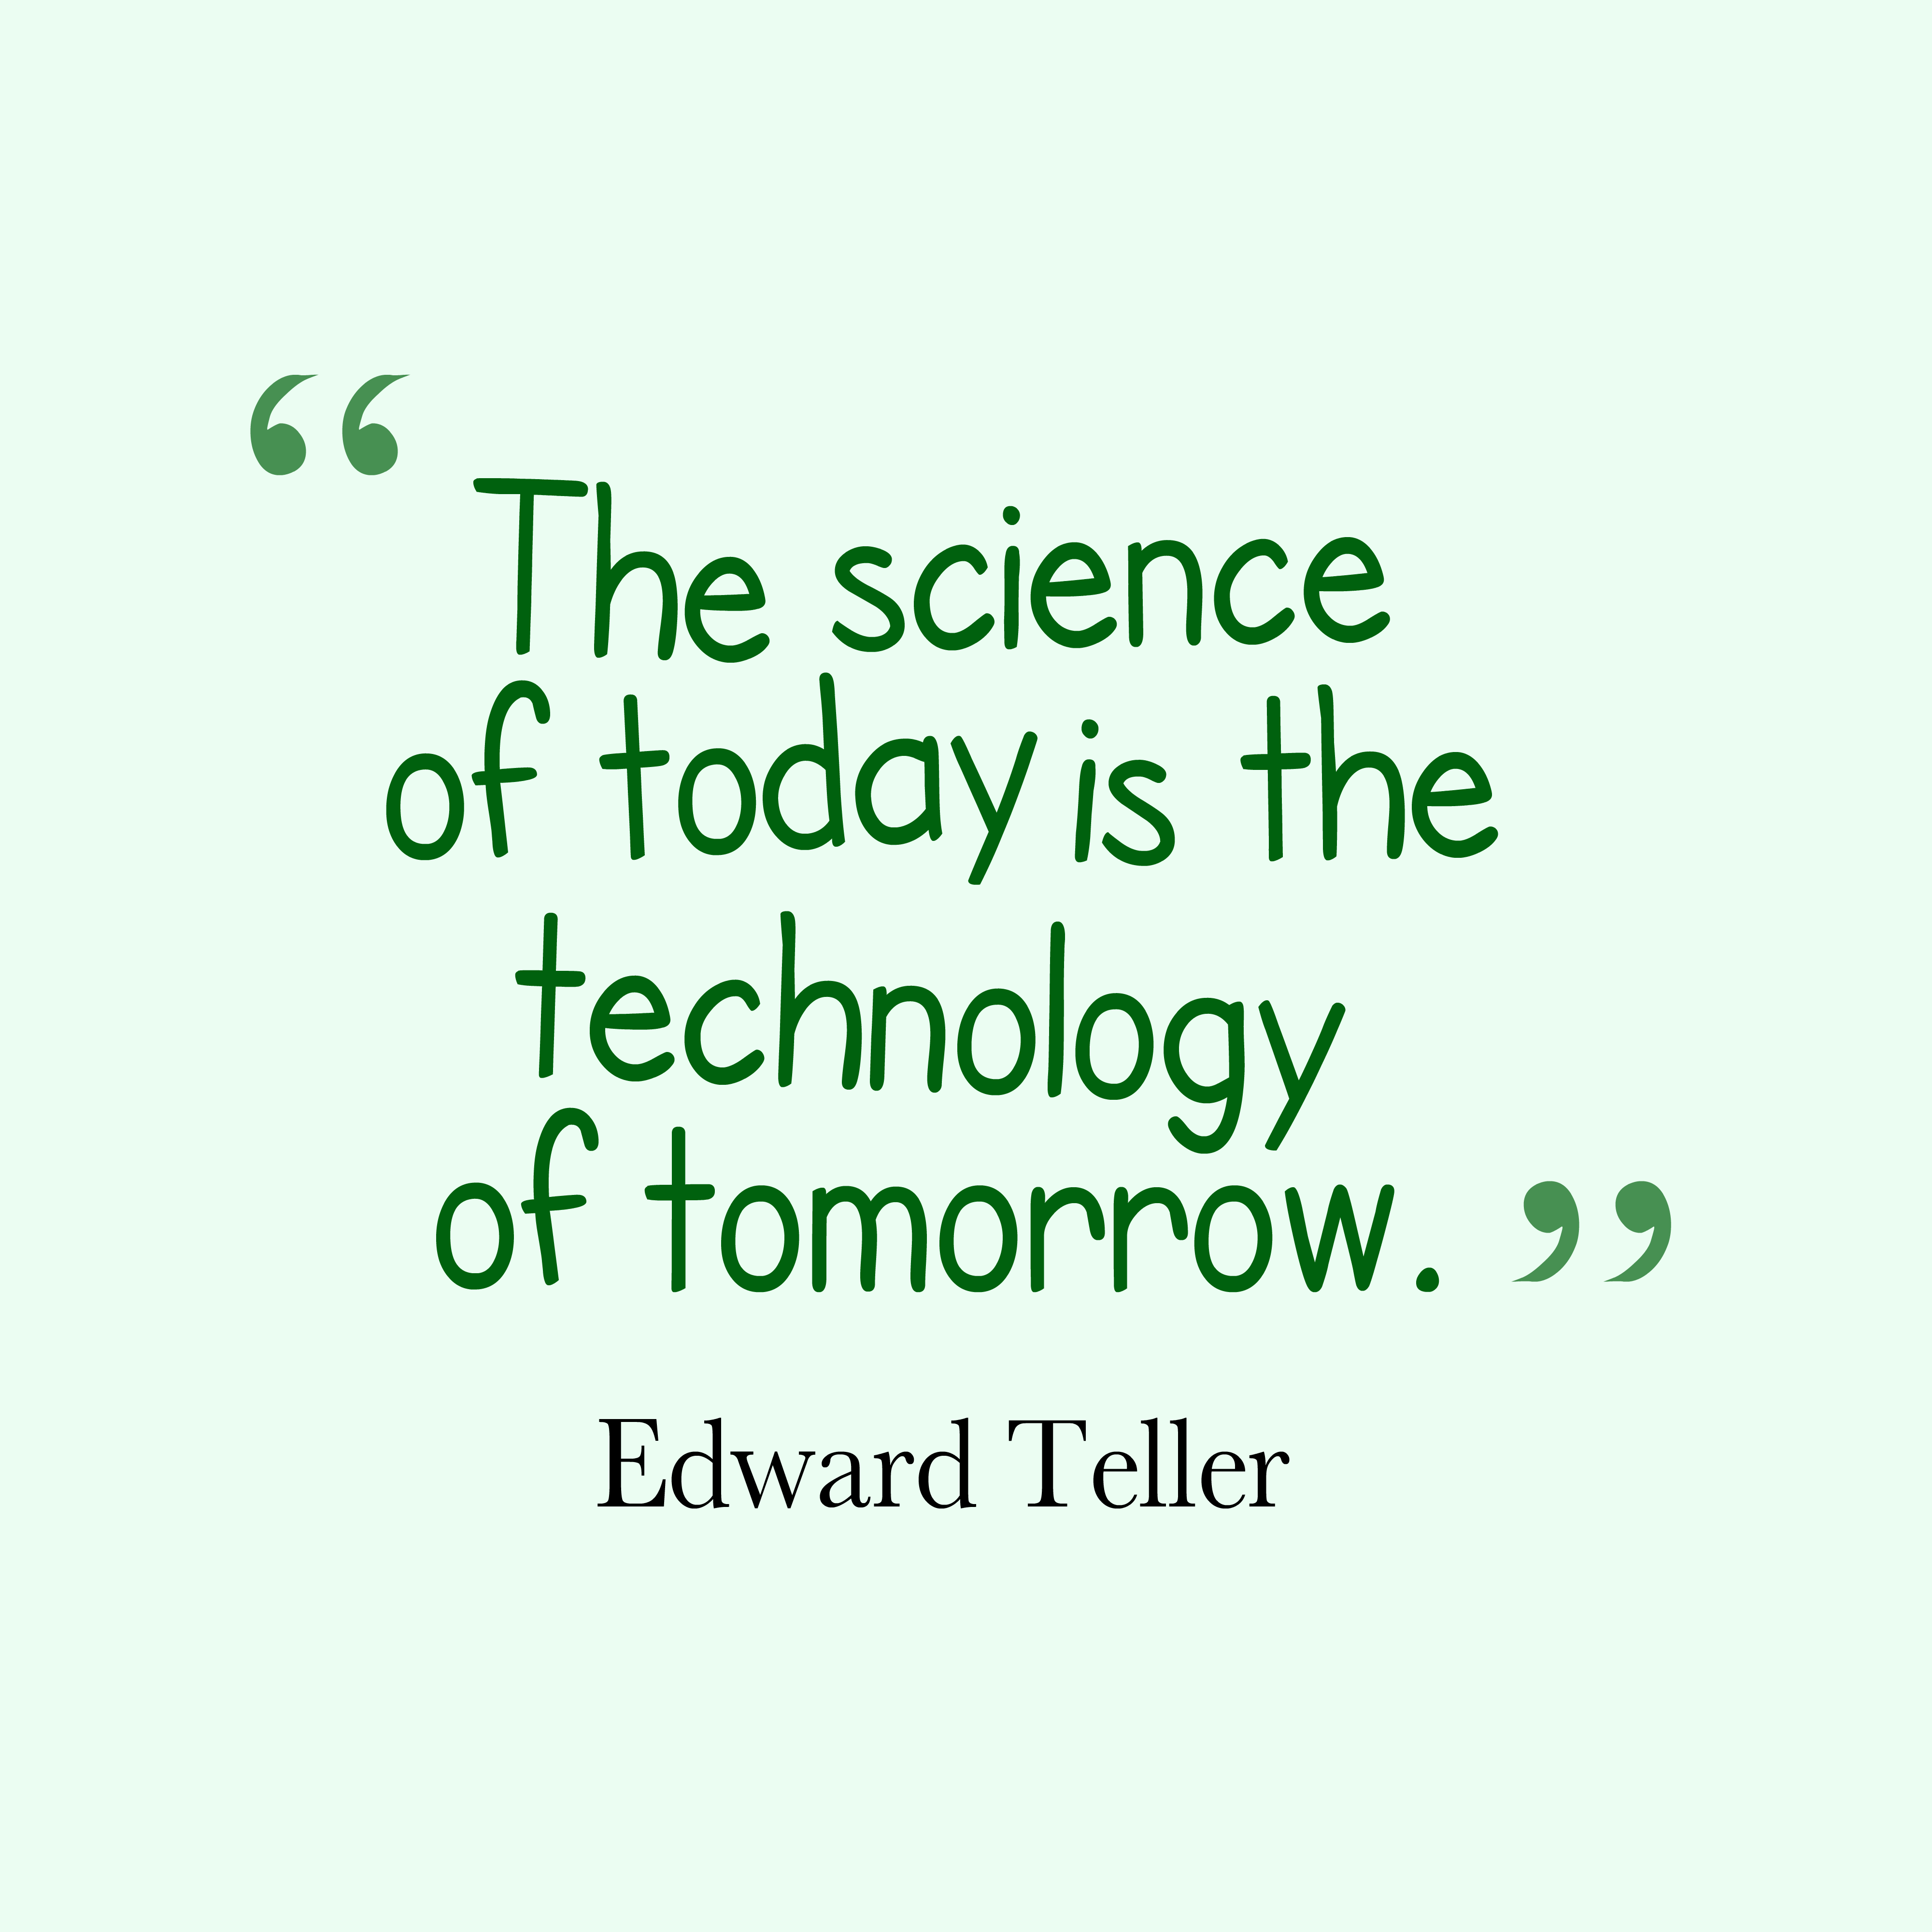 get high resolution using text from edward teller quote